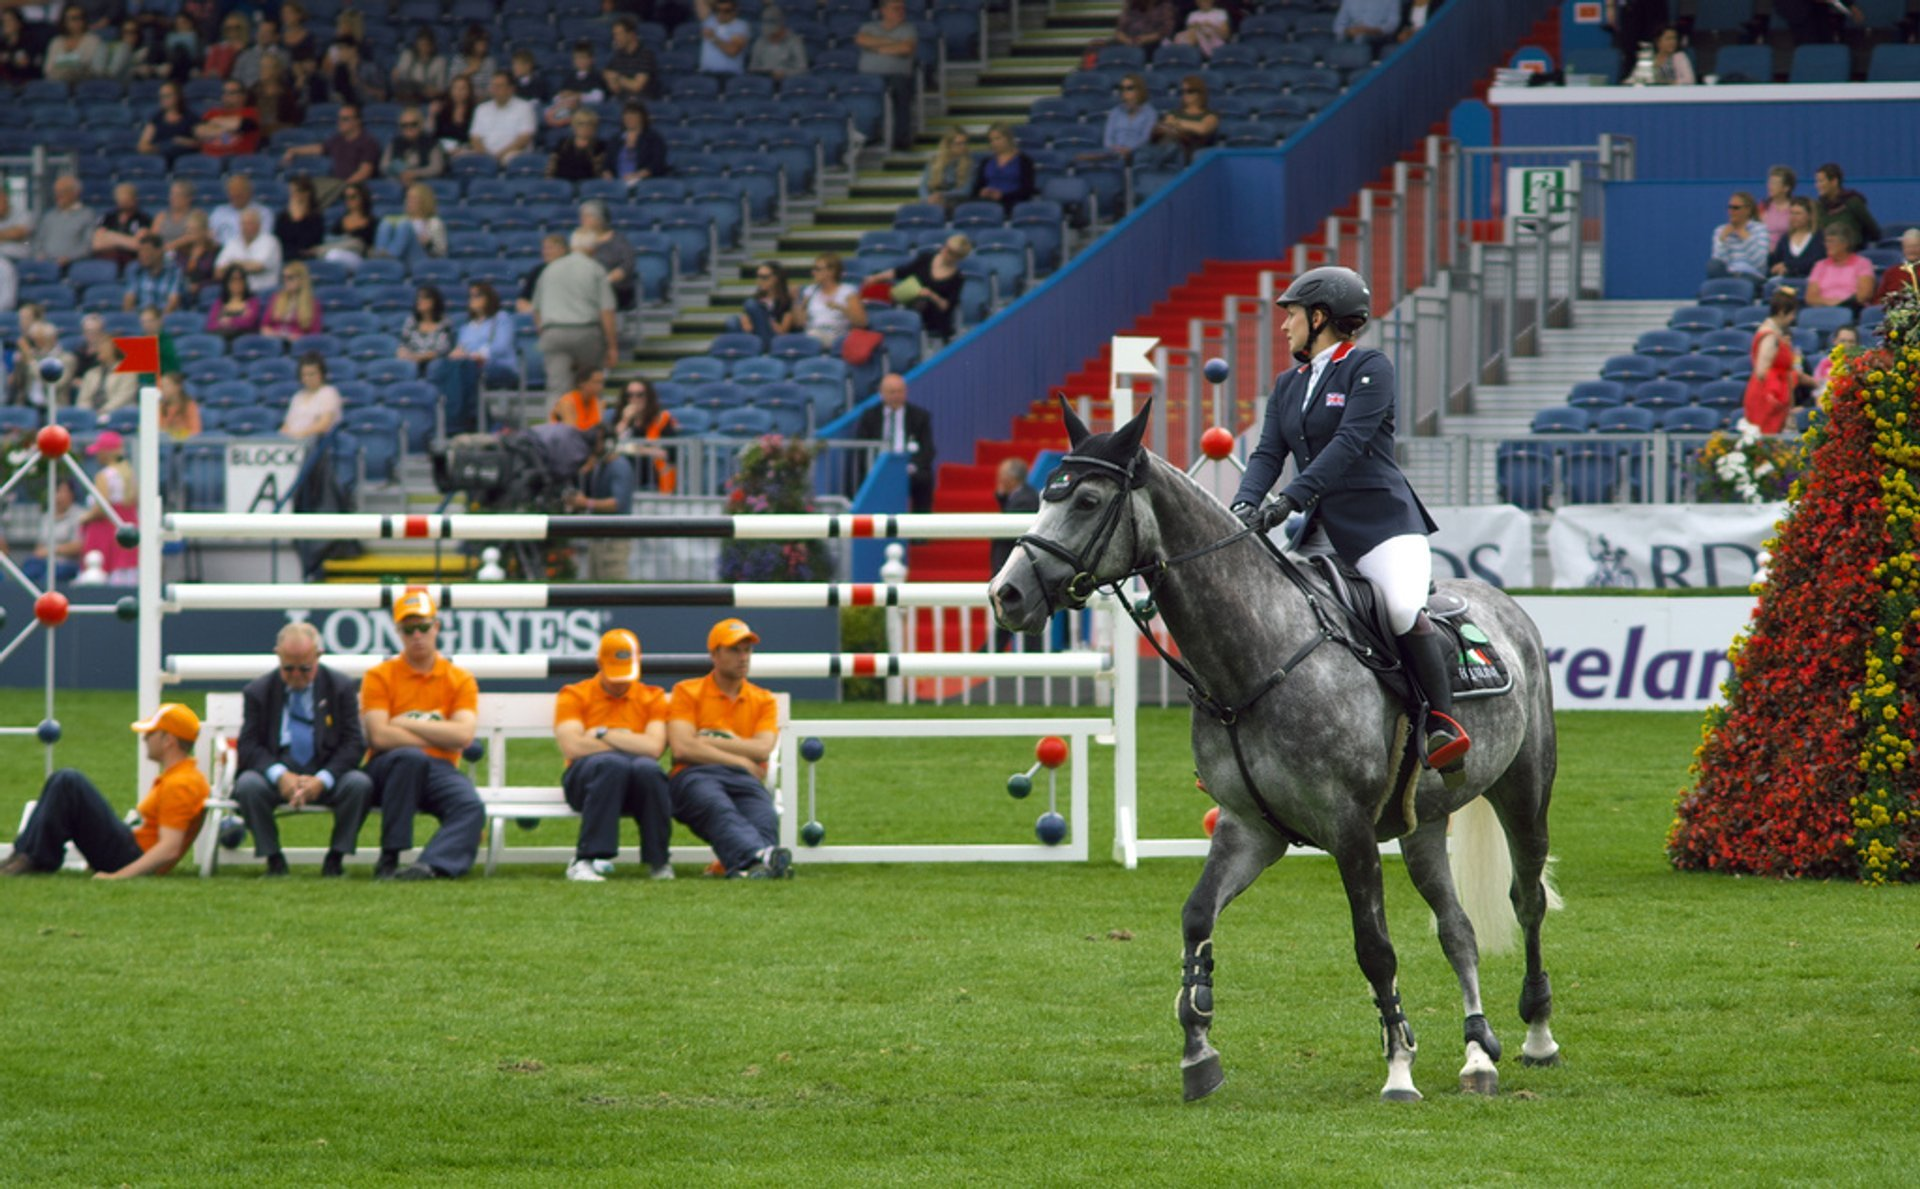 Dublin Horse Show in Dublin 2019 - Best Time